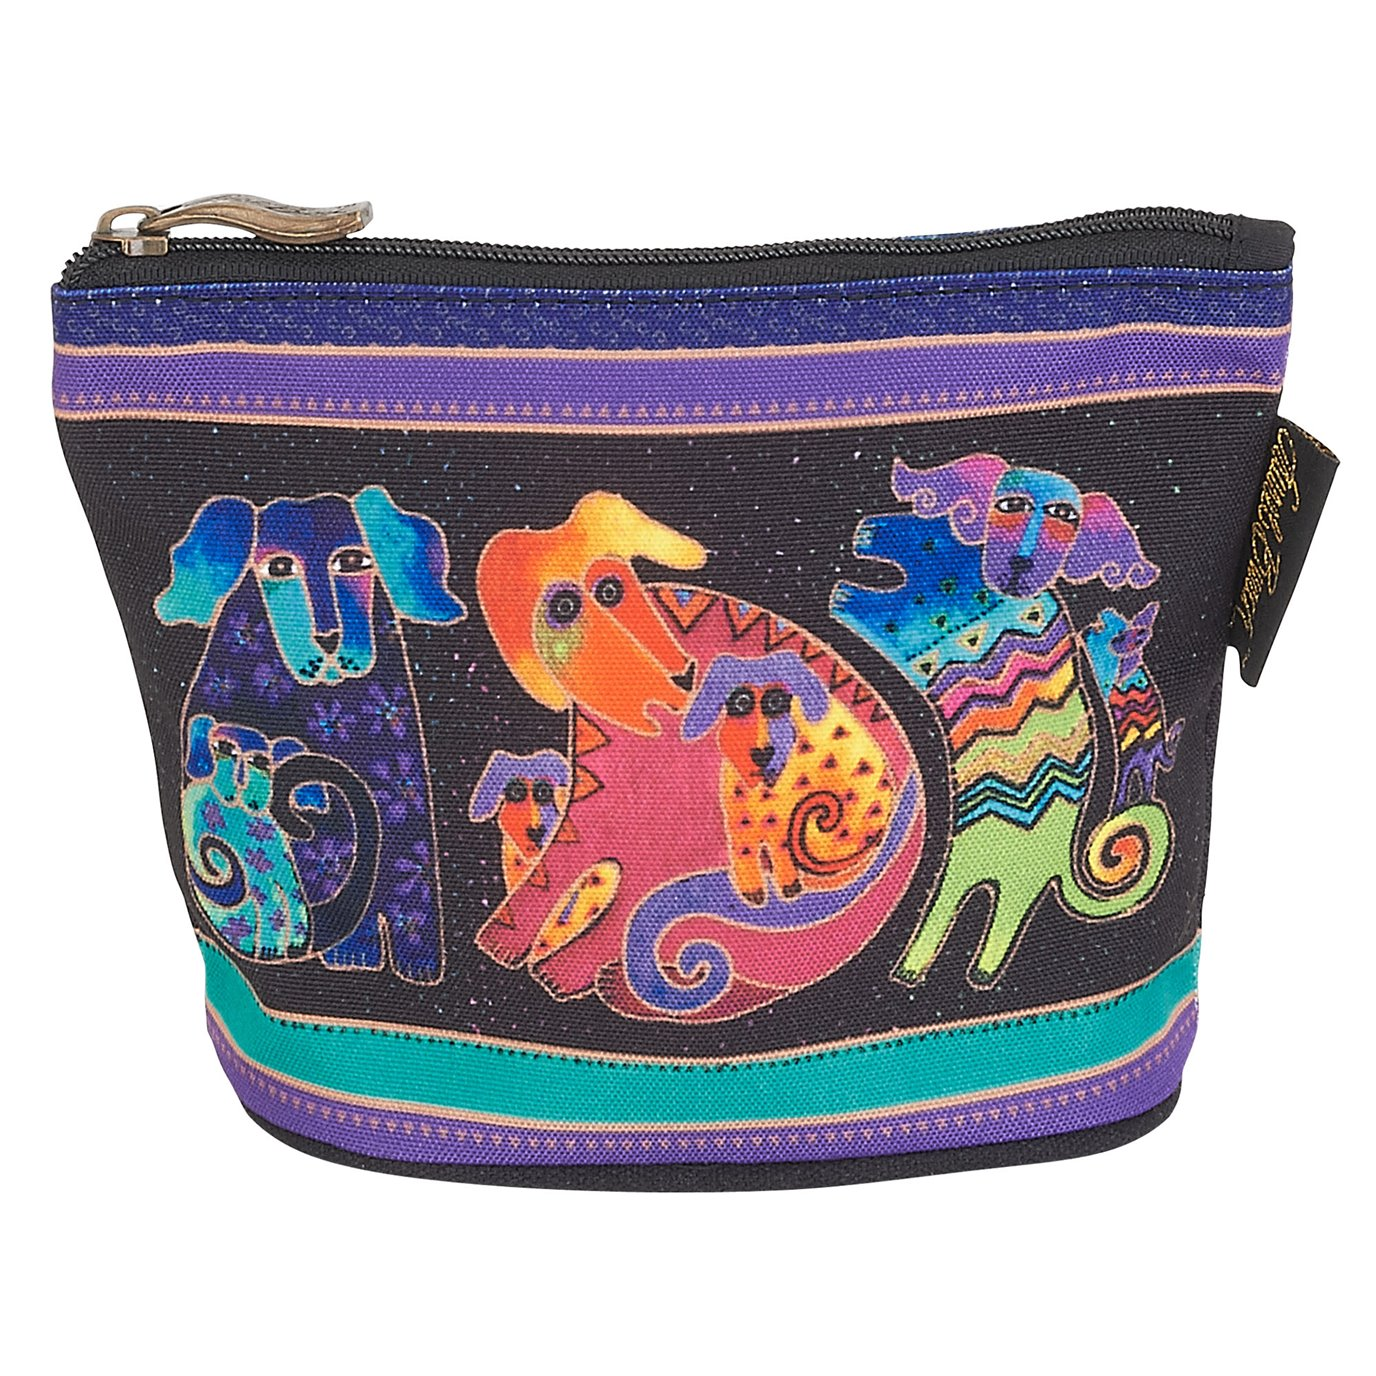 Laurel Burch Canine Friends Mini Cosmetic Bag - playful dogs